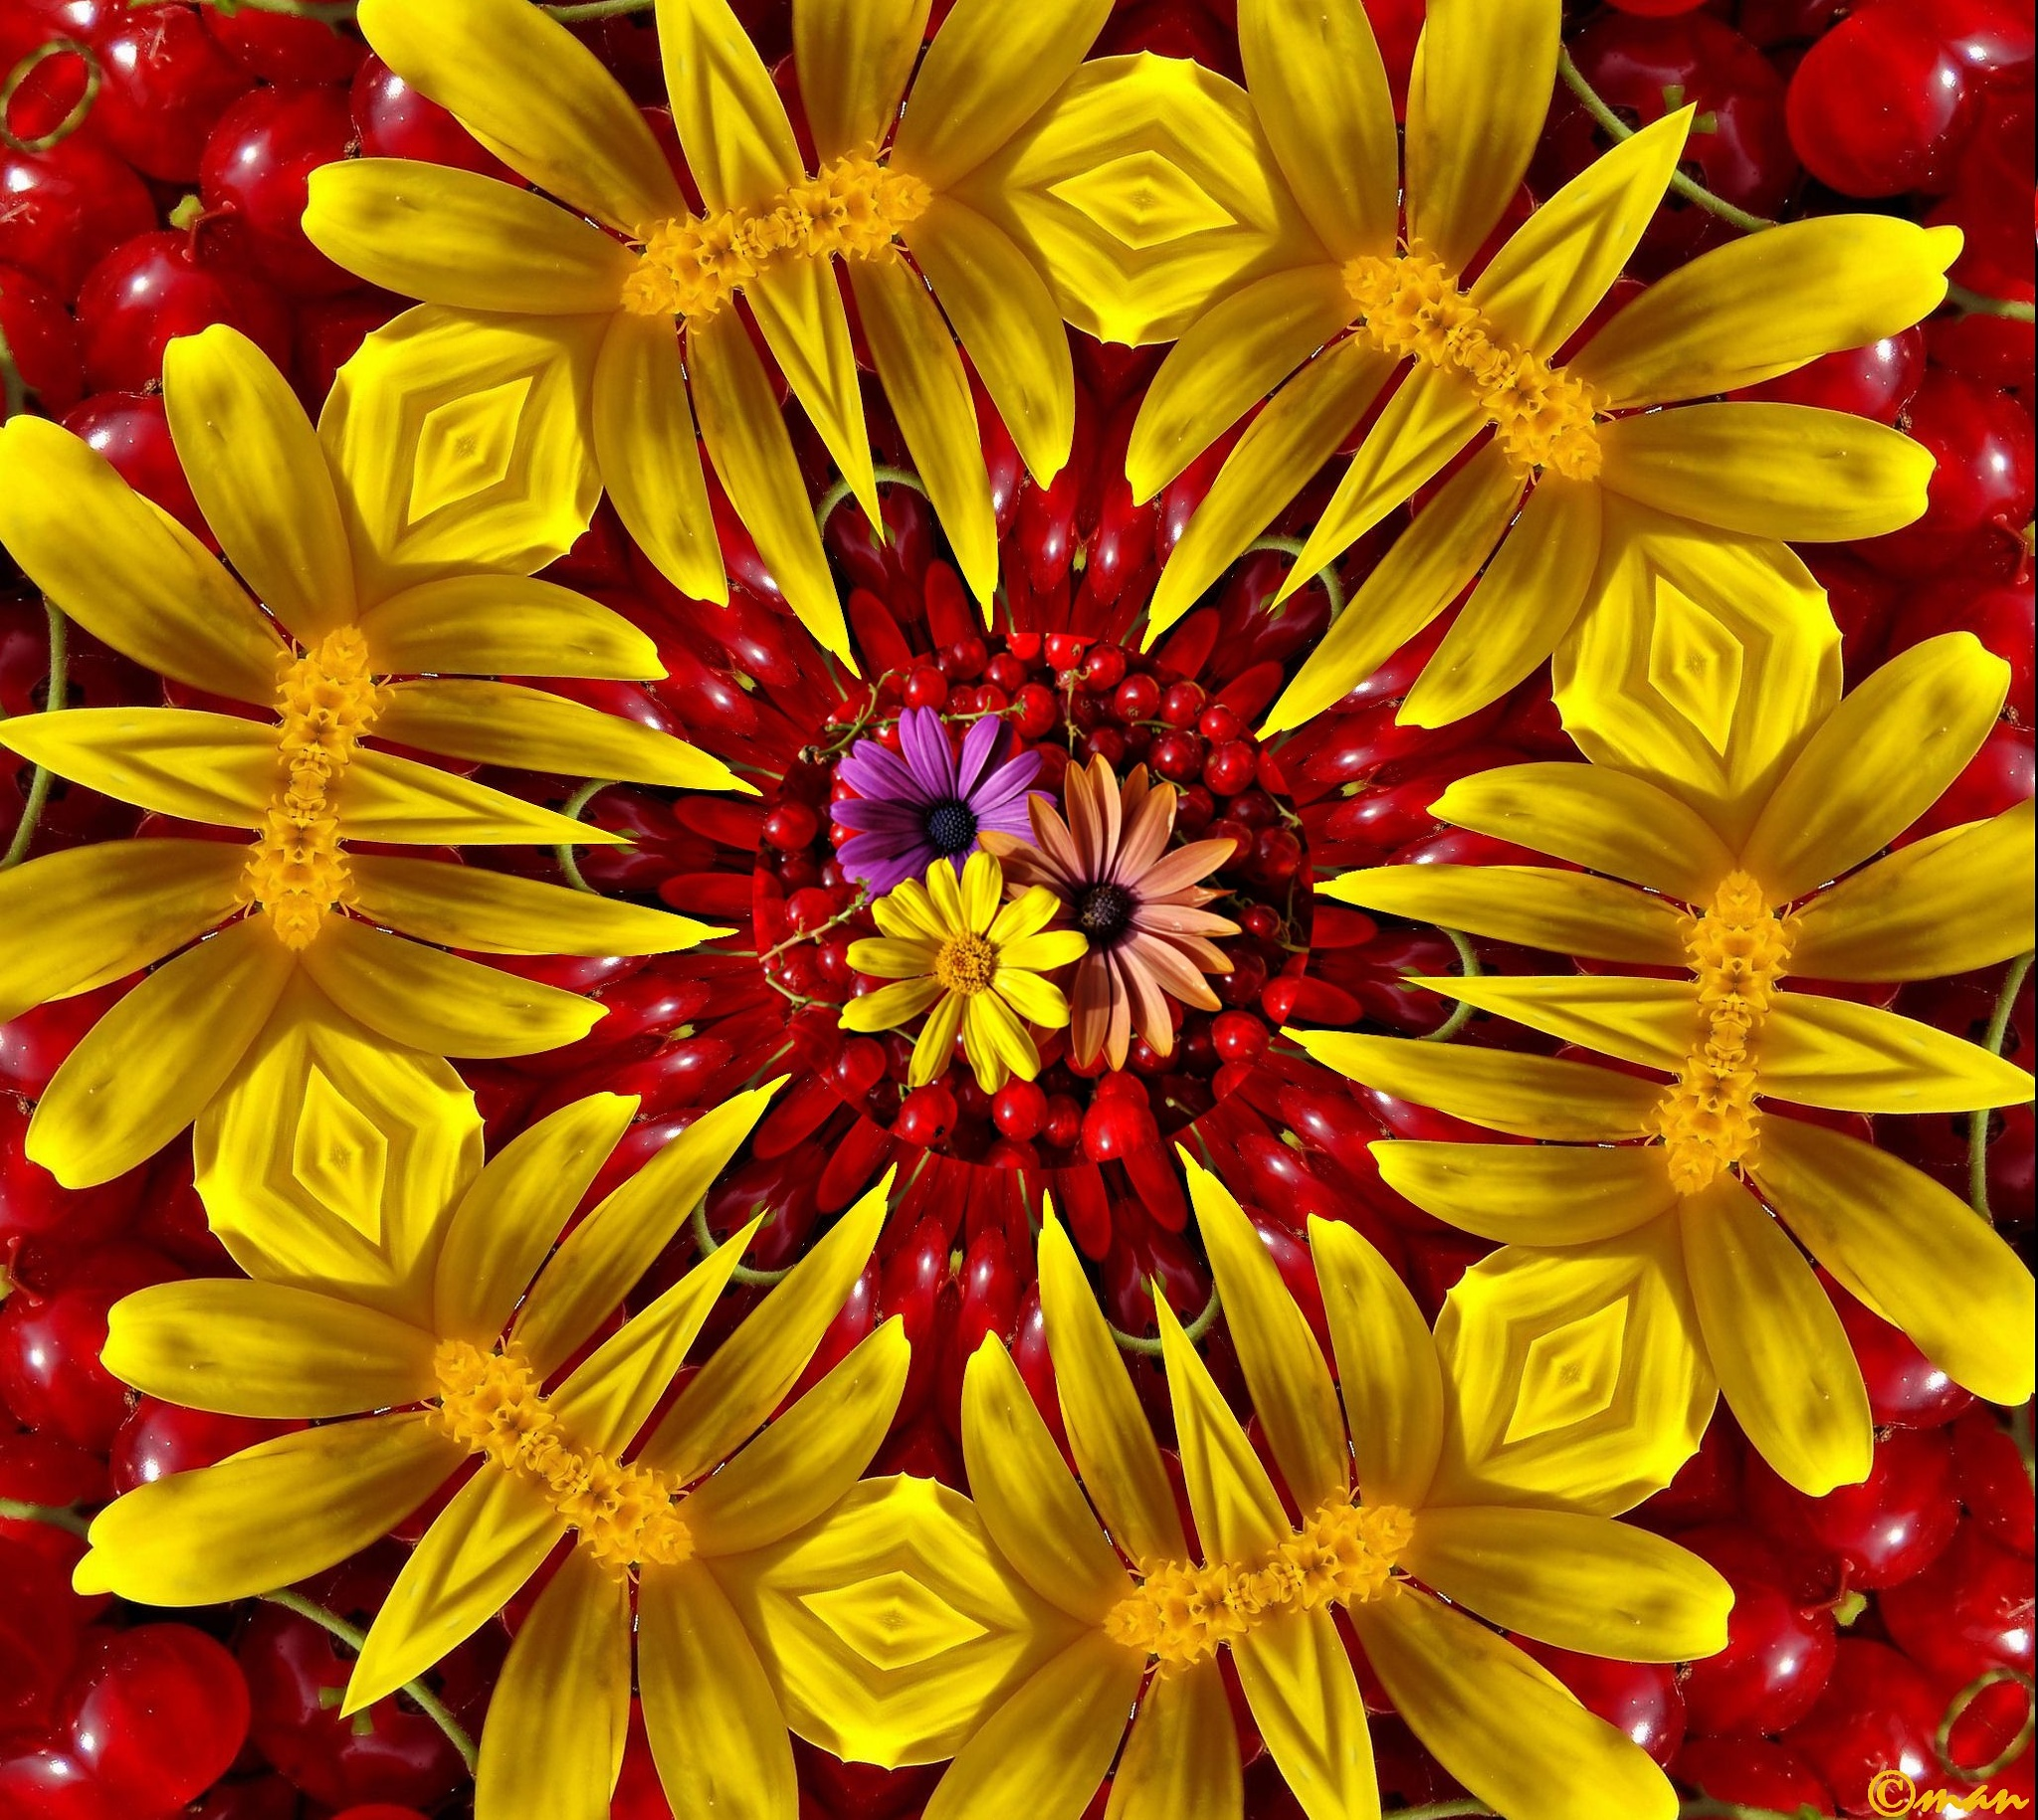 kaleidoscope flowers in a tray of red currants   by Mariano Arizzi Novelli